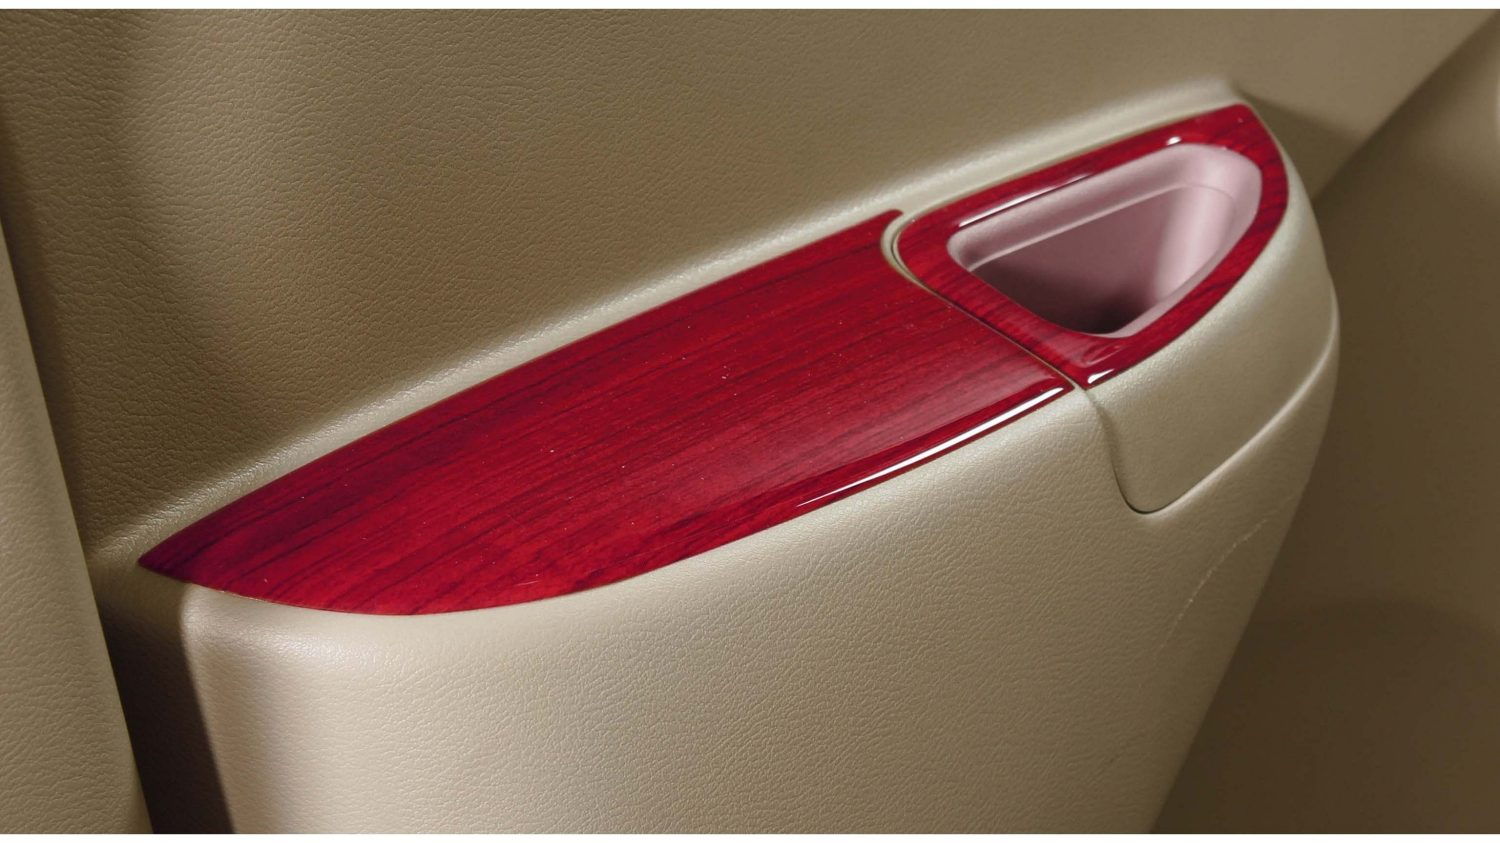 Interior finisher(power window) - Rosewood